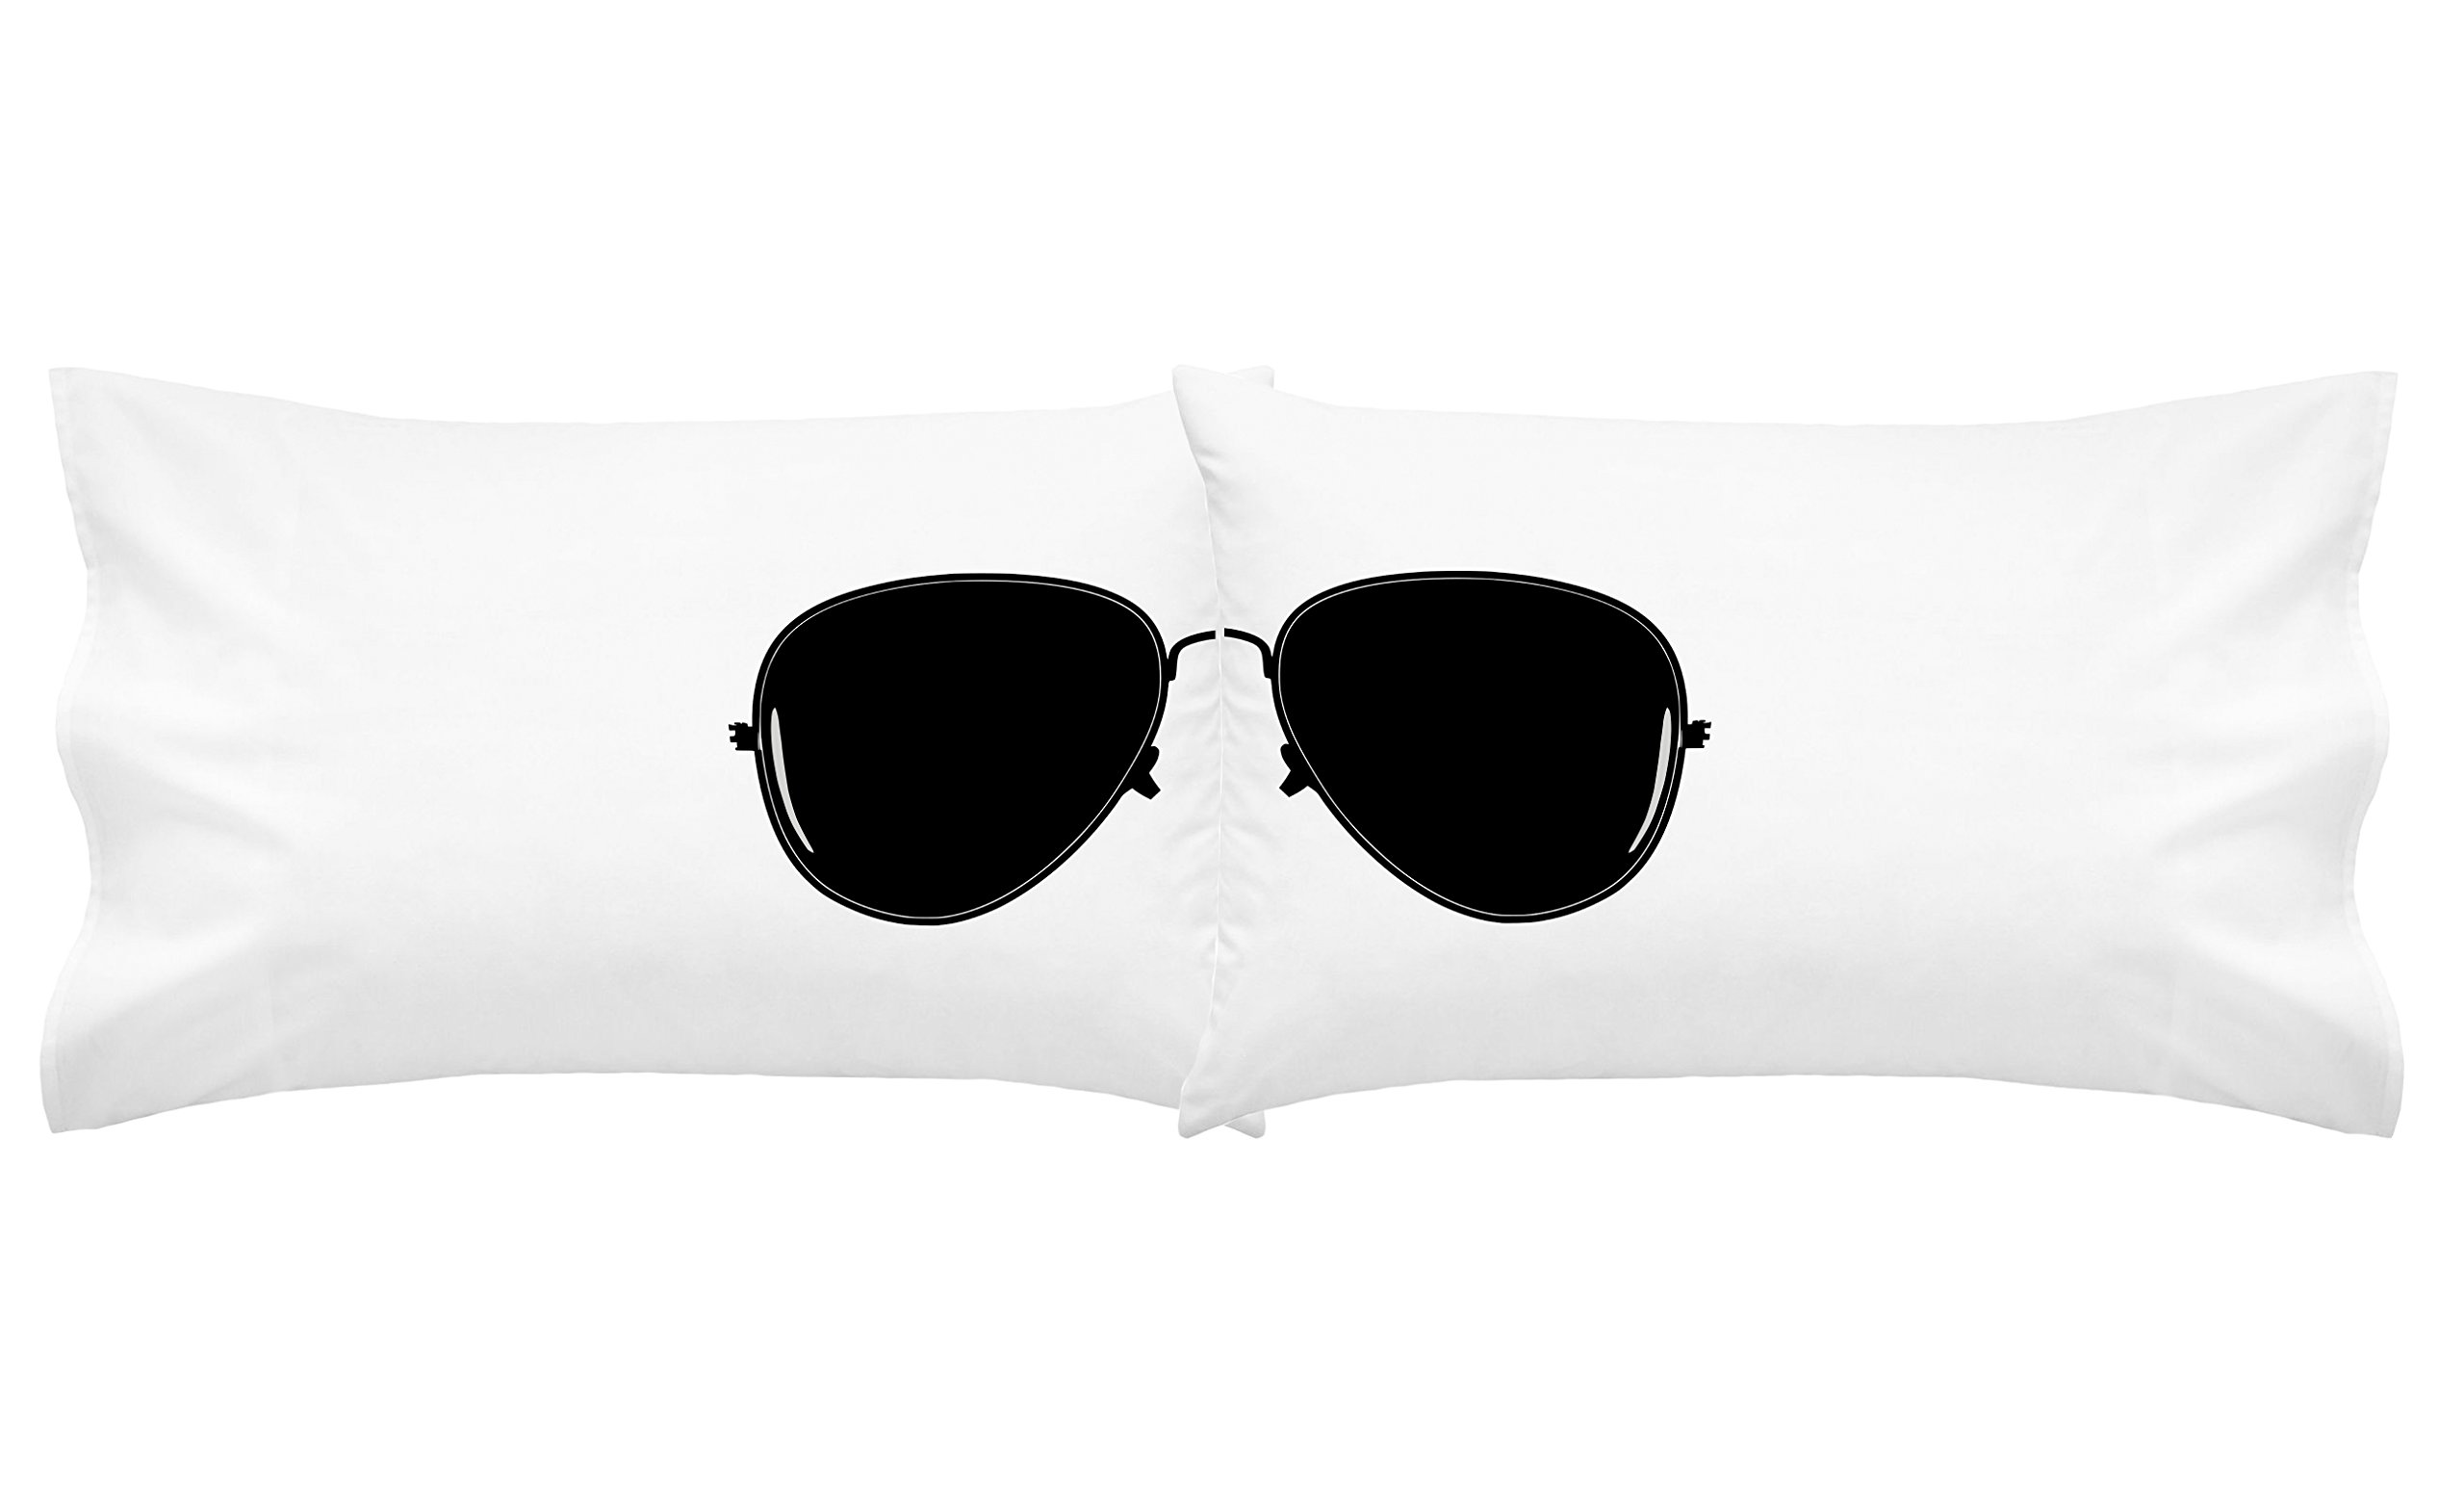 Oh, Susannah Aviator Sunglasses Pillowcases (White and Black) Pilot Bedding College Dorm Room Pillow Cases Mirrored Aviator Appearance (2 20x30 Queen/Standard Size Pillowcases)